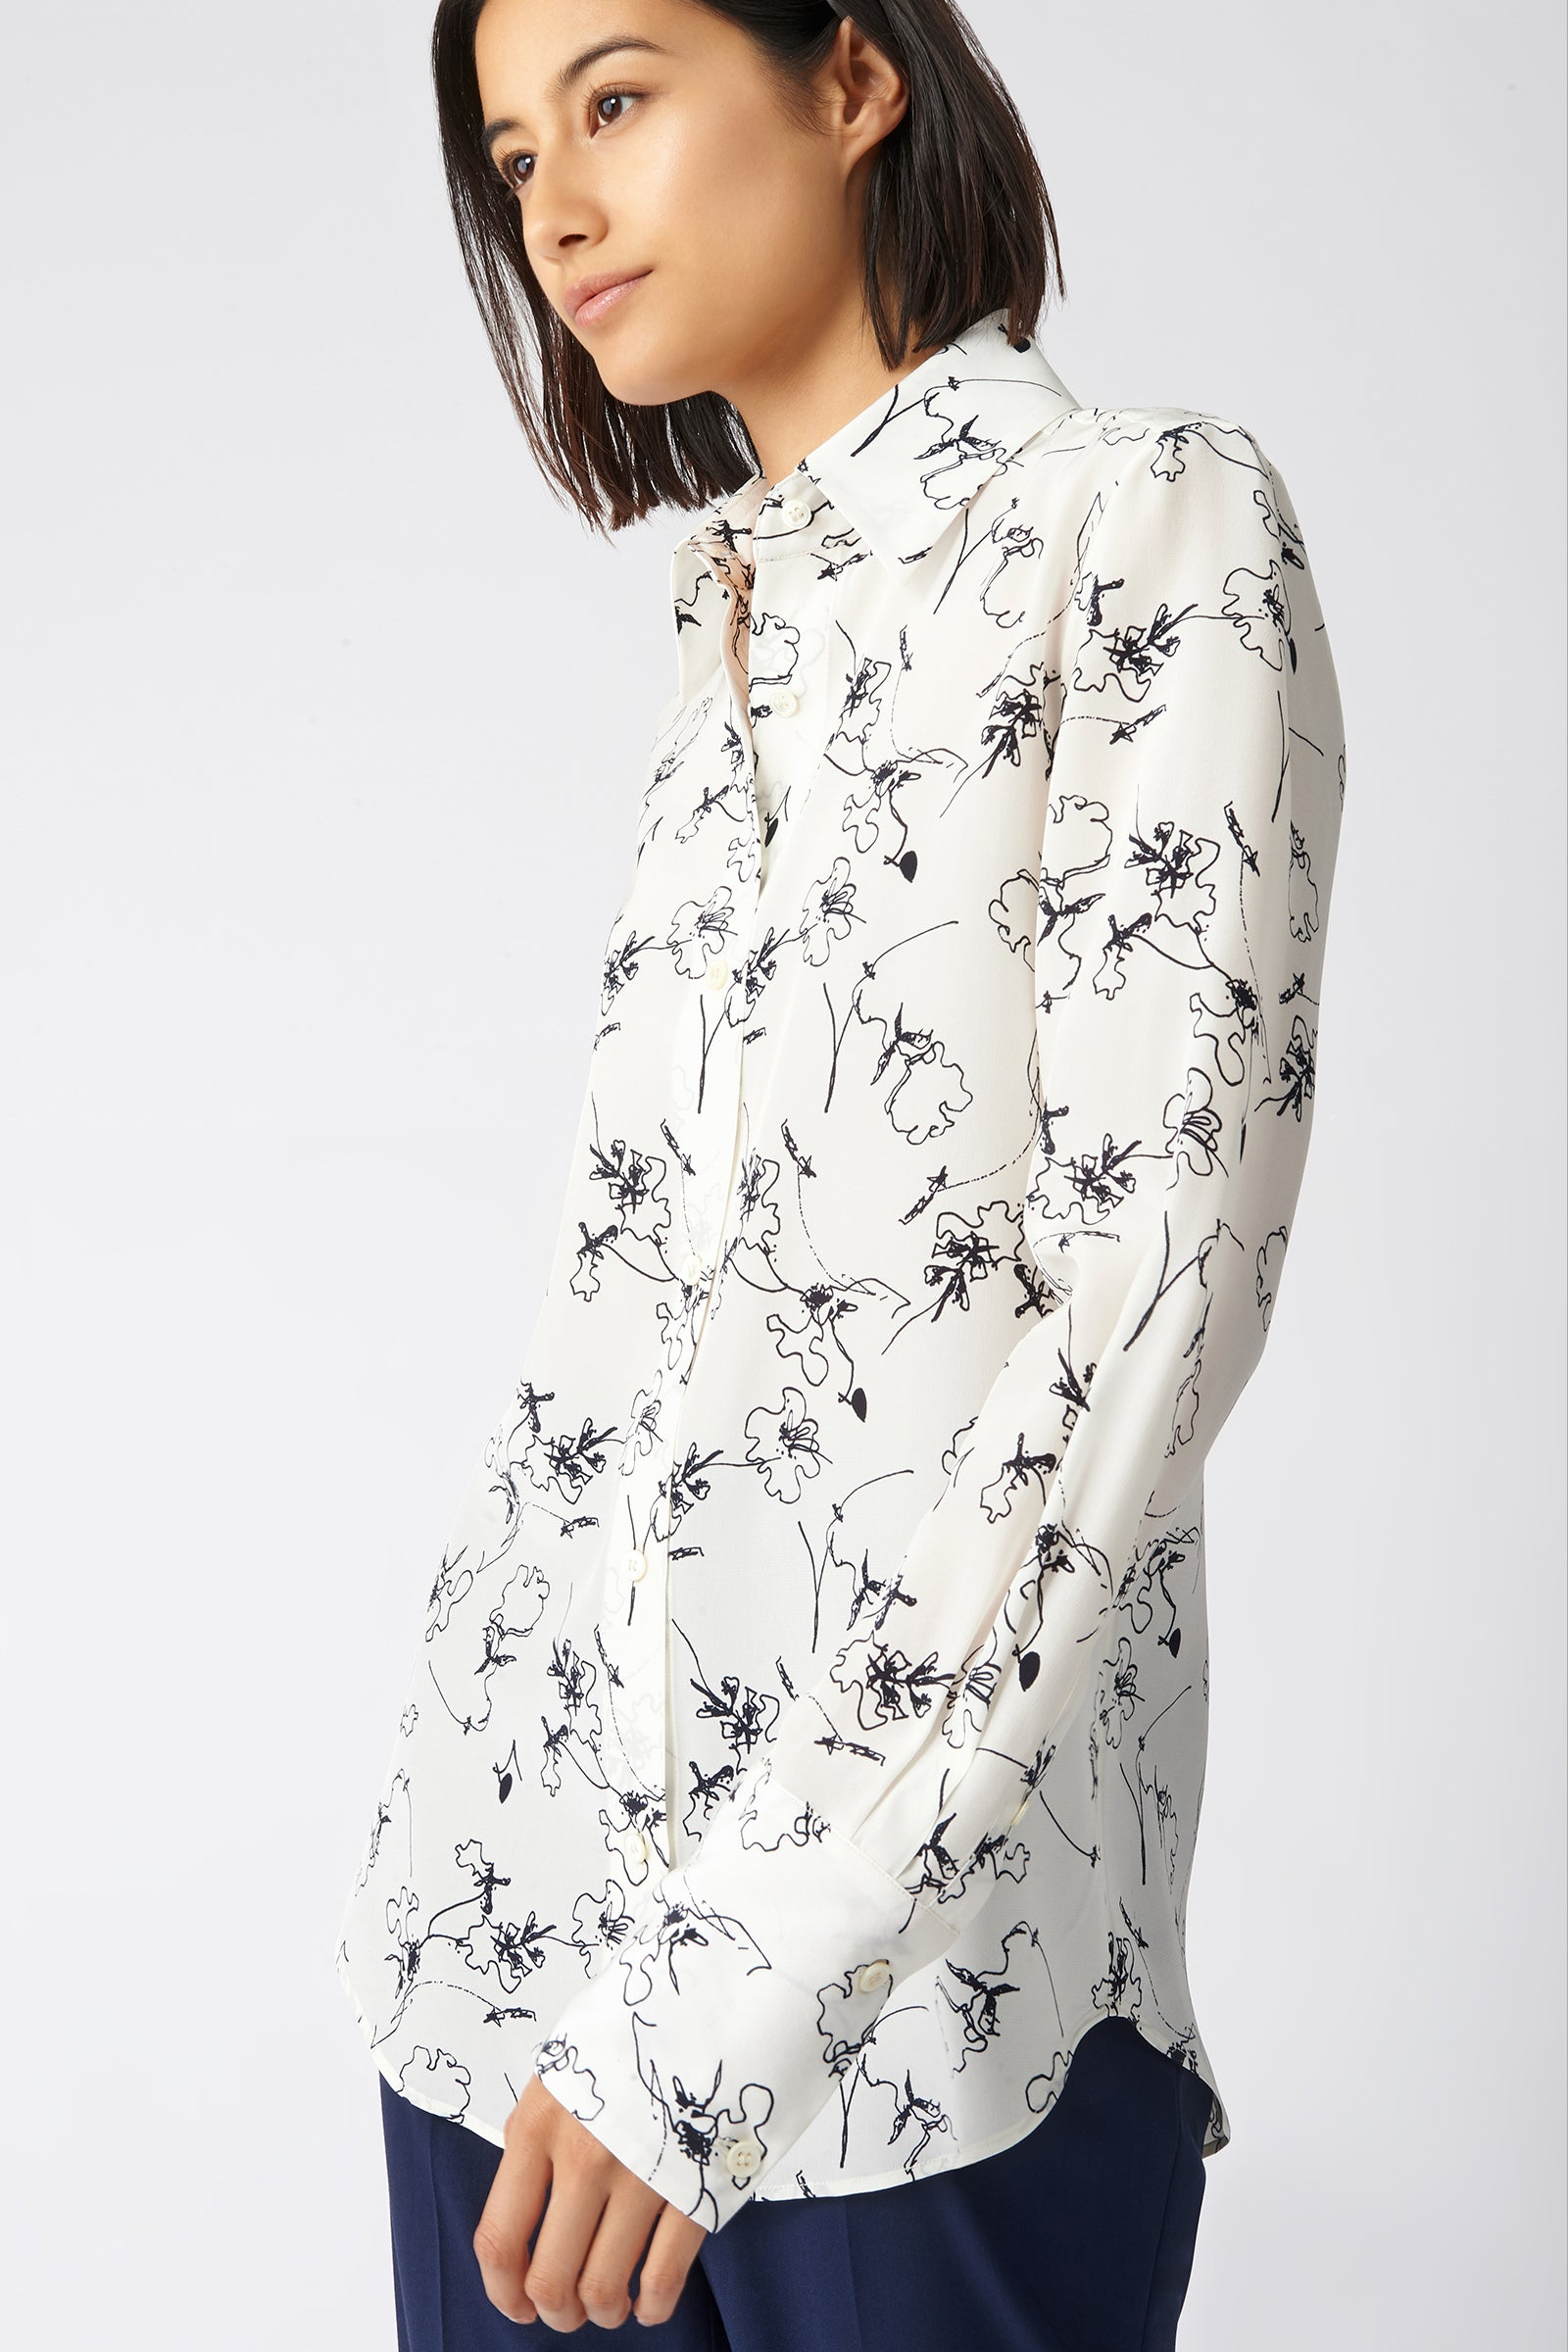 Kal Rieman Classic Tailored Blouse in Navy Floral on Model Side View